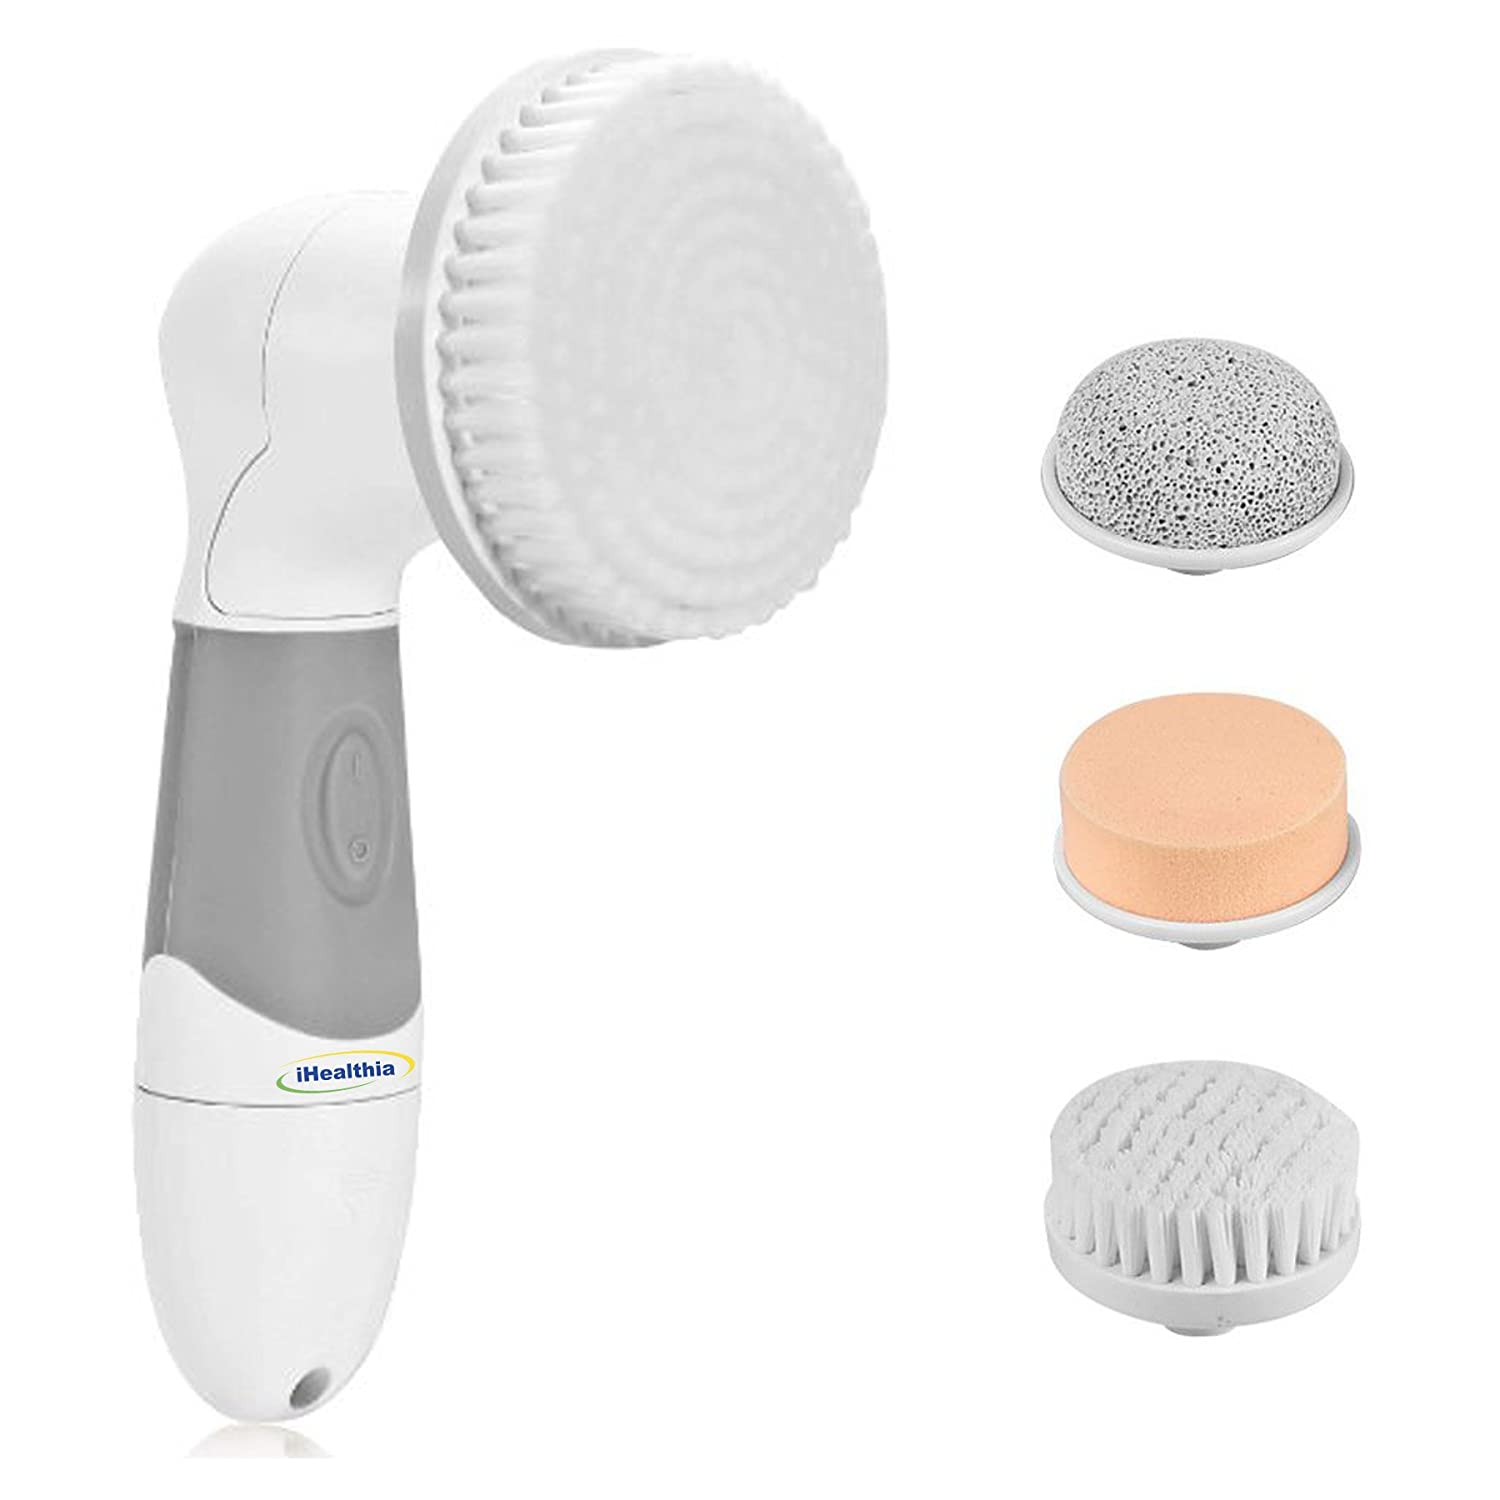 New! Face & Body Skin Cleansing Brush. Best Deep Cleansing | Exfoliating Microdermabrasion | Pore Minimizer | Blackhead Remover | Acne Scars & Dark Spots Corrector - Perfect At Home Spa Treatment Kit Discovery Health